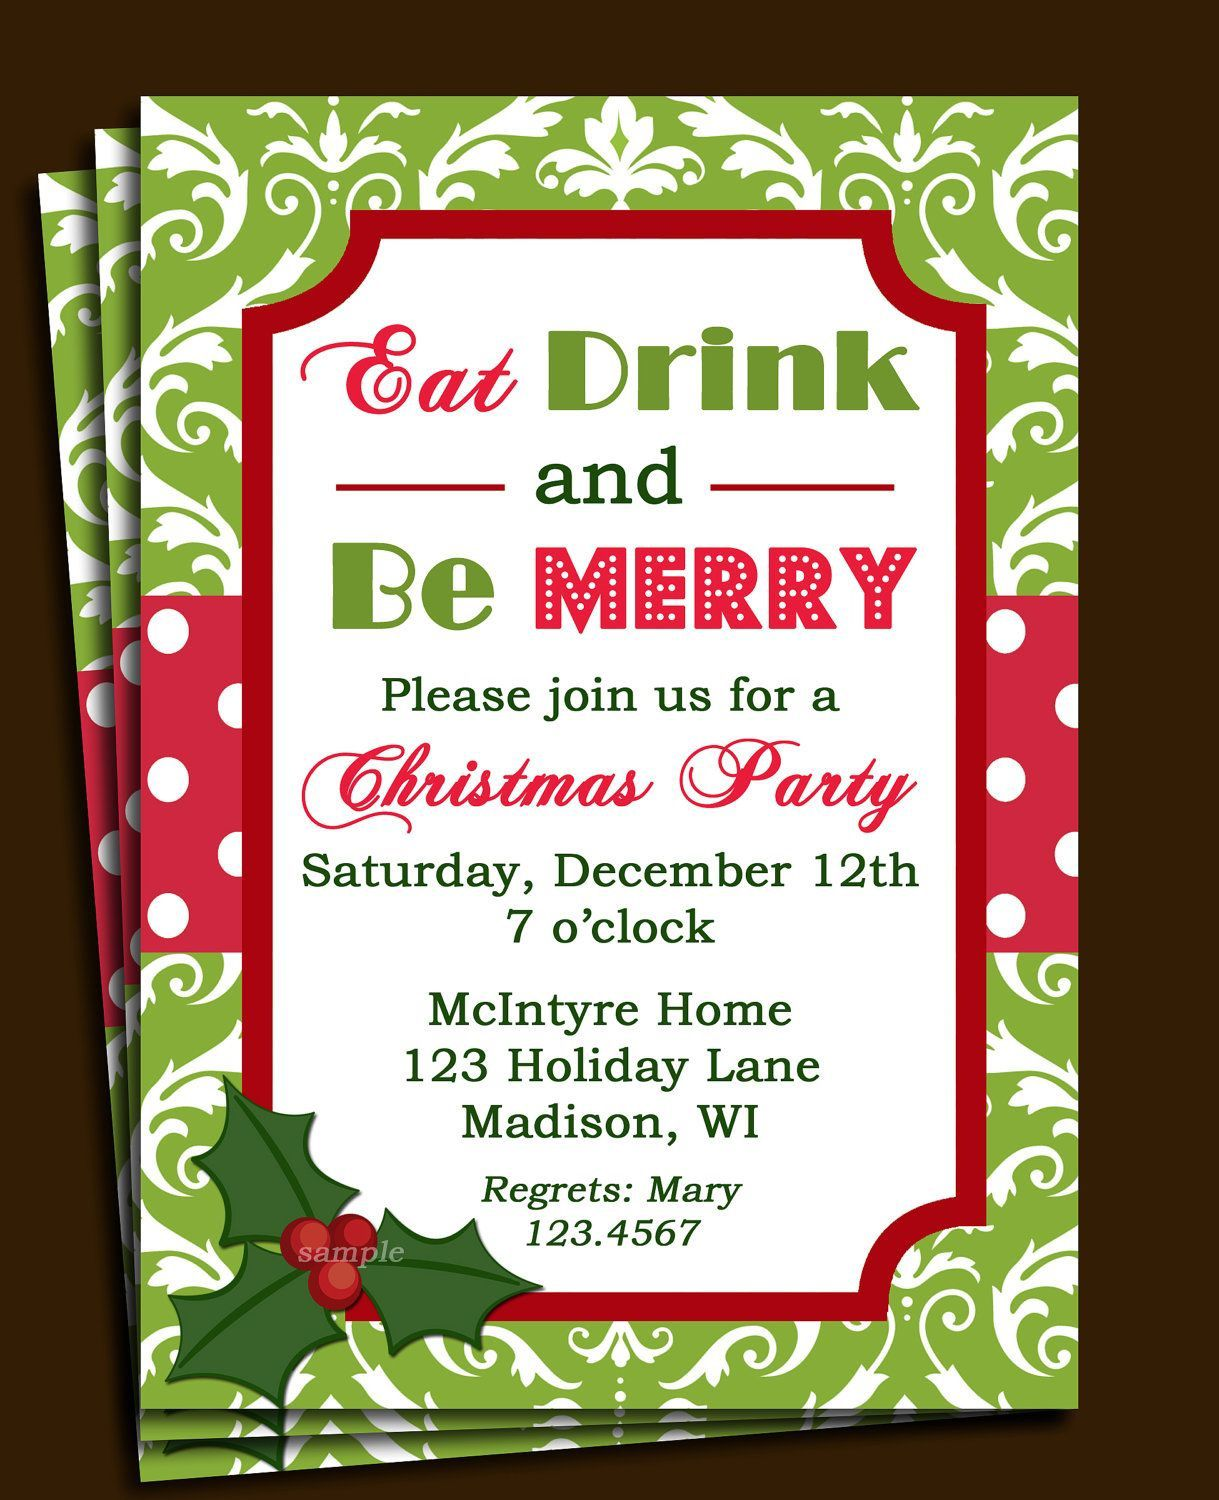 005 Marvelou Office Christma Party Invitation Wording Sample Design  Holiday ExampleFull